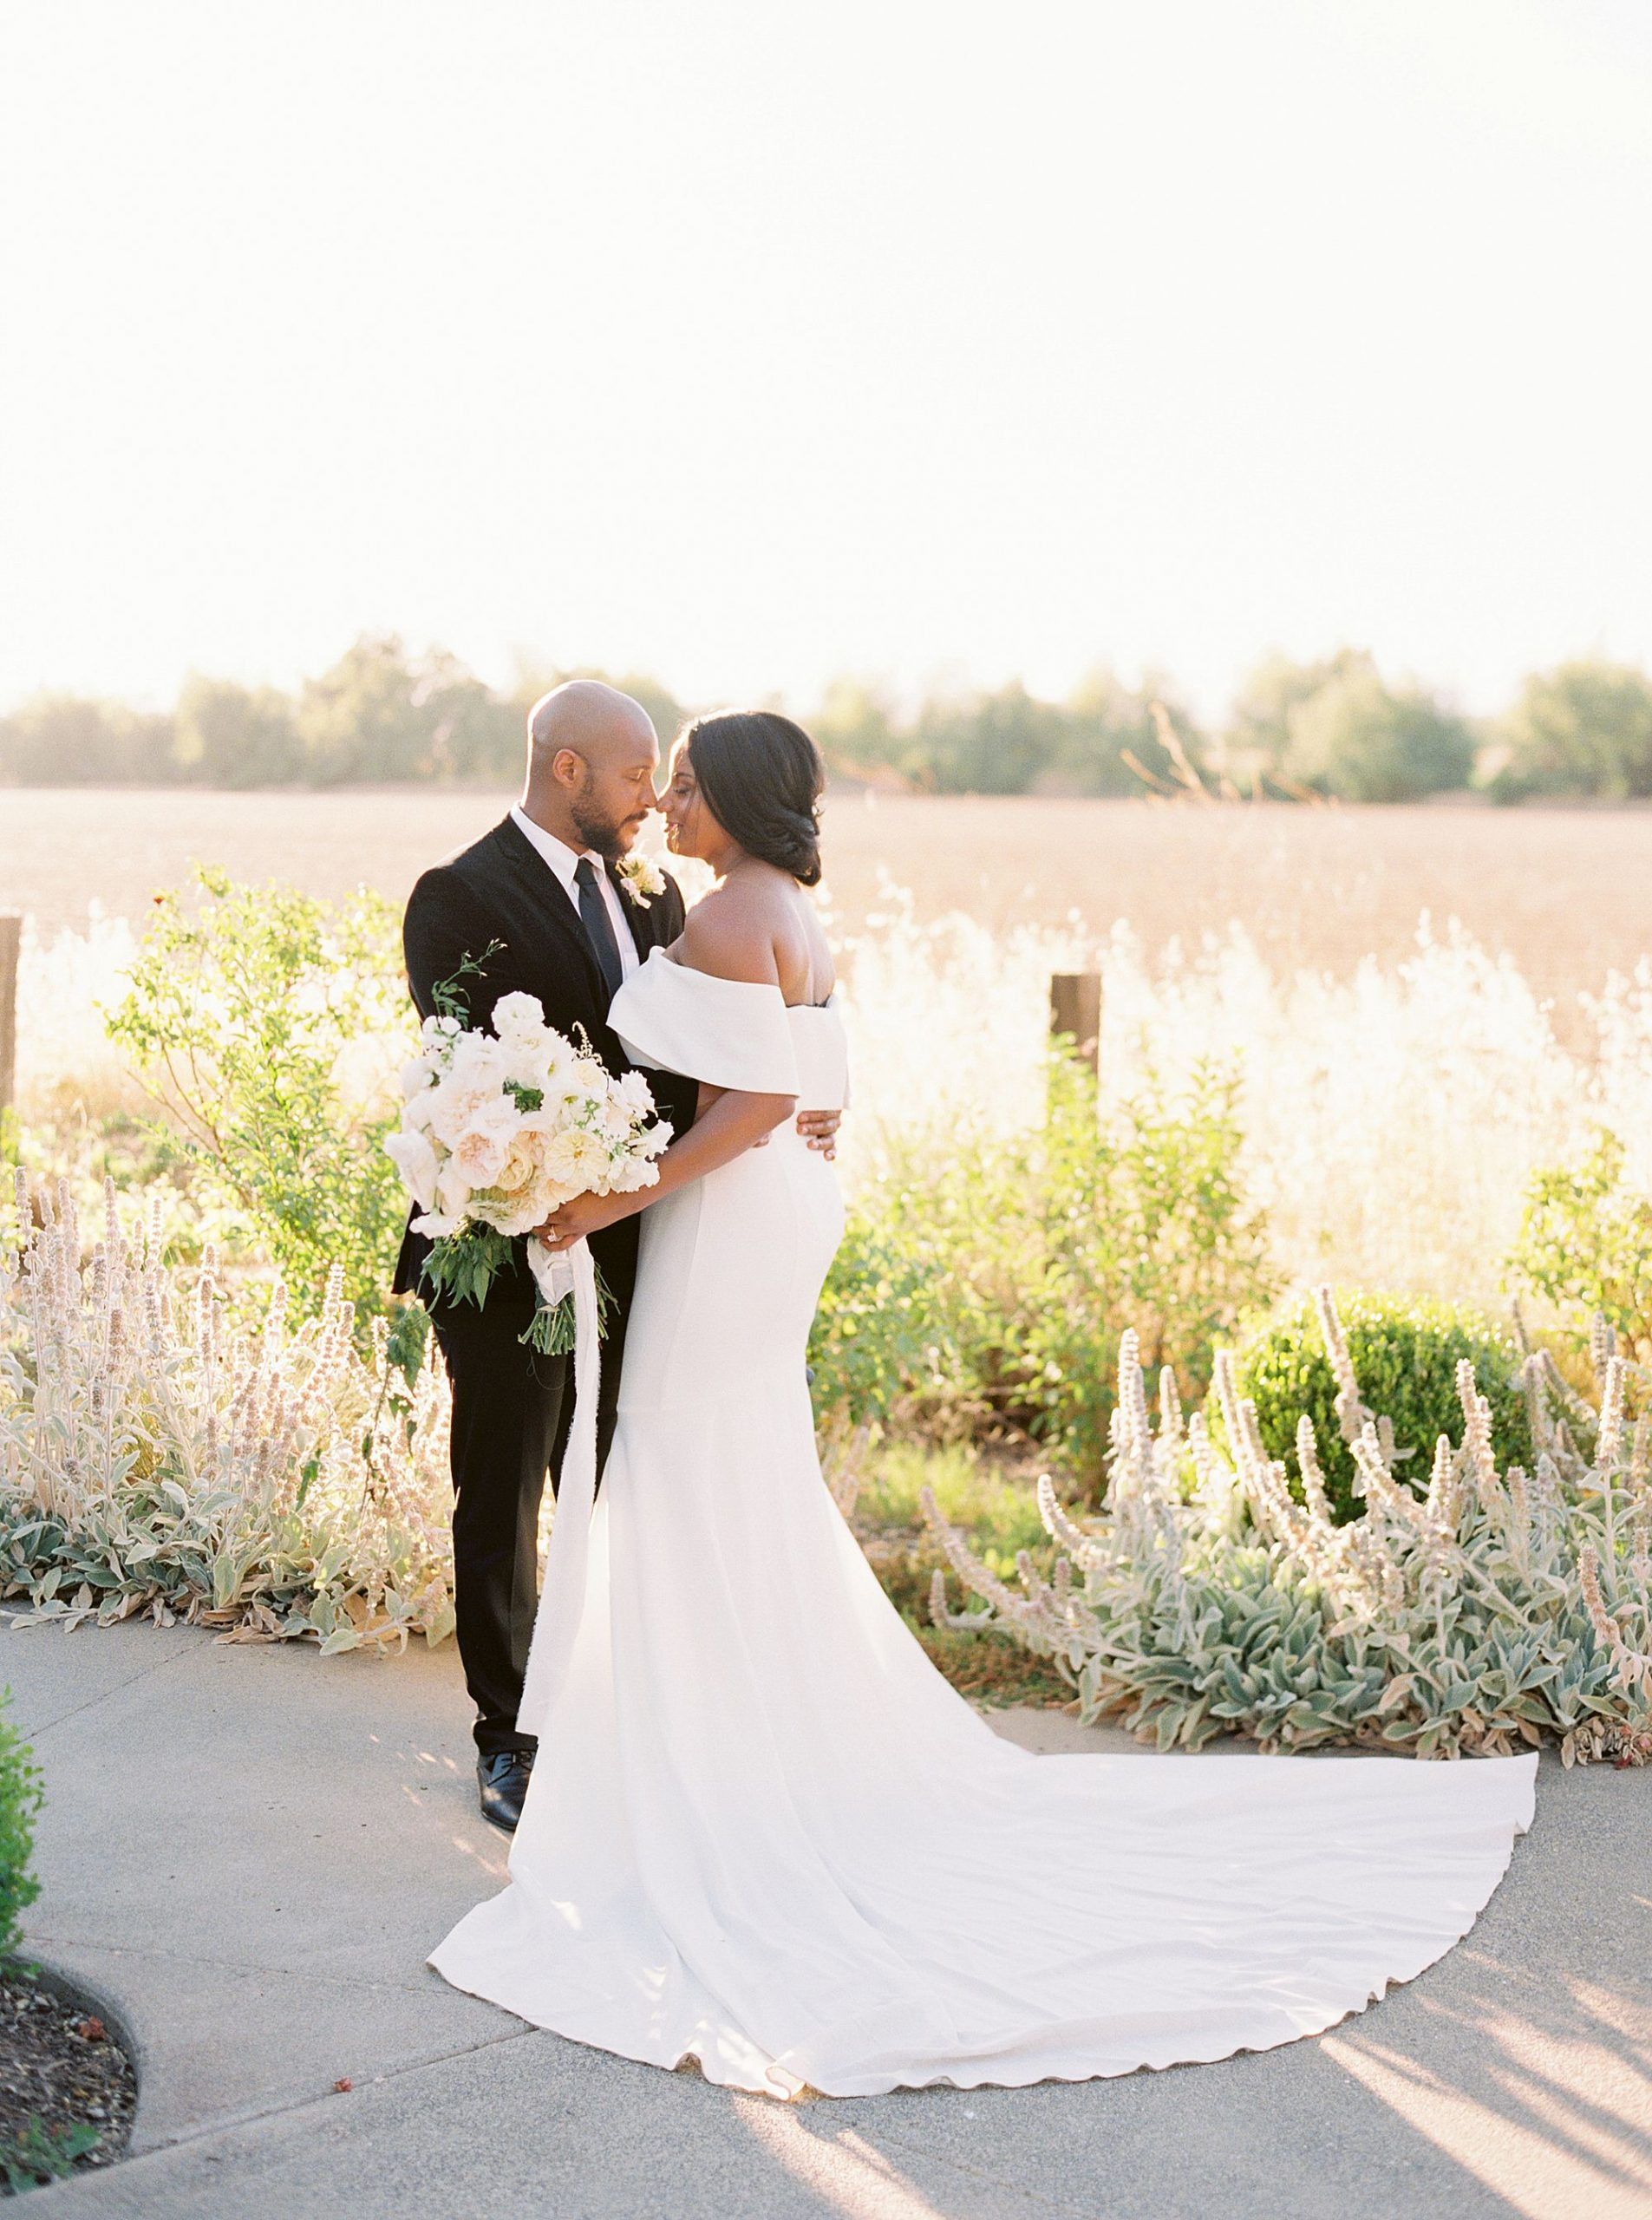 Park Winters Micro-Wedding Inspiration on Style Me Pretty - Stephanie Teague Events - Ashley Baumgartner - Park Winters Wedding - Black Tie Wedding - Micro-Wedding Sacramento Photographer_0048.jpg